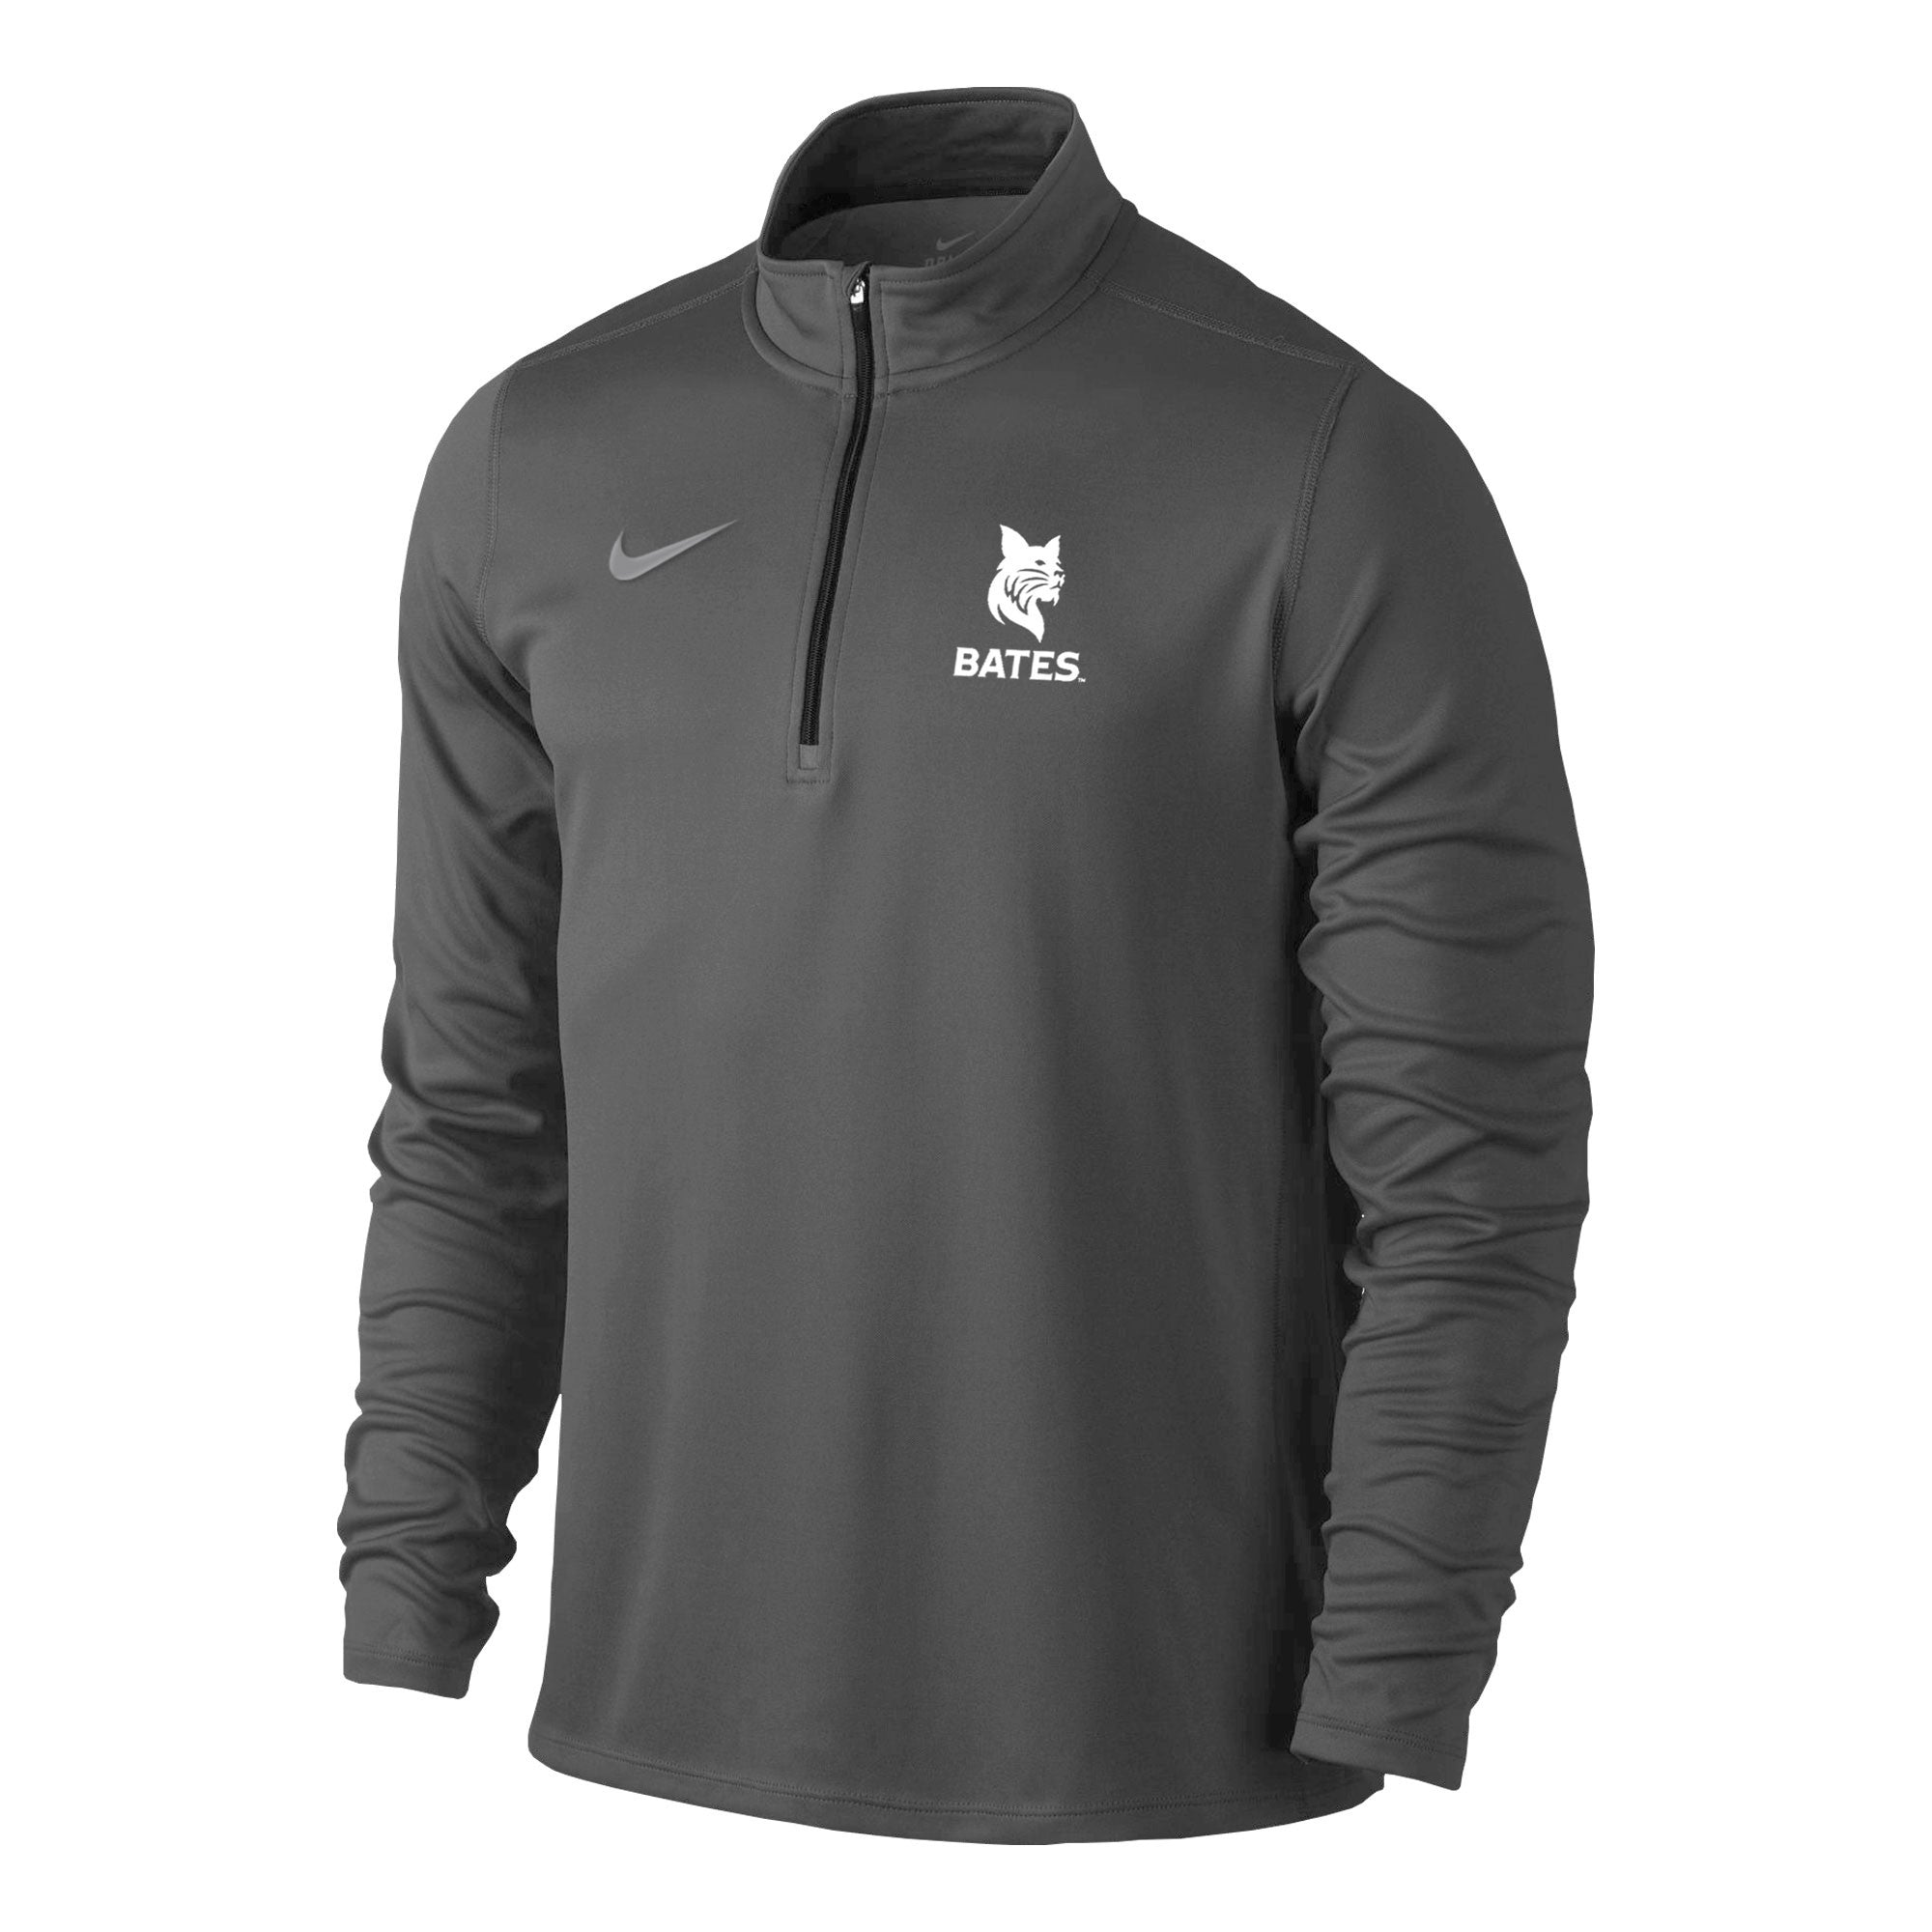 Nike Solid Element Pull-Over (2 Color Options) - 1/4 zip, Outerwear